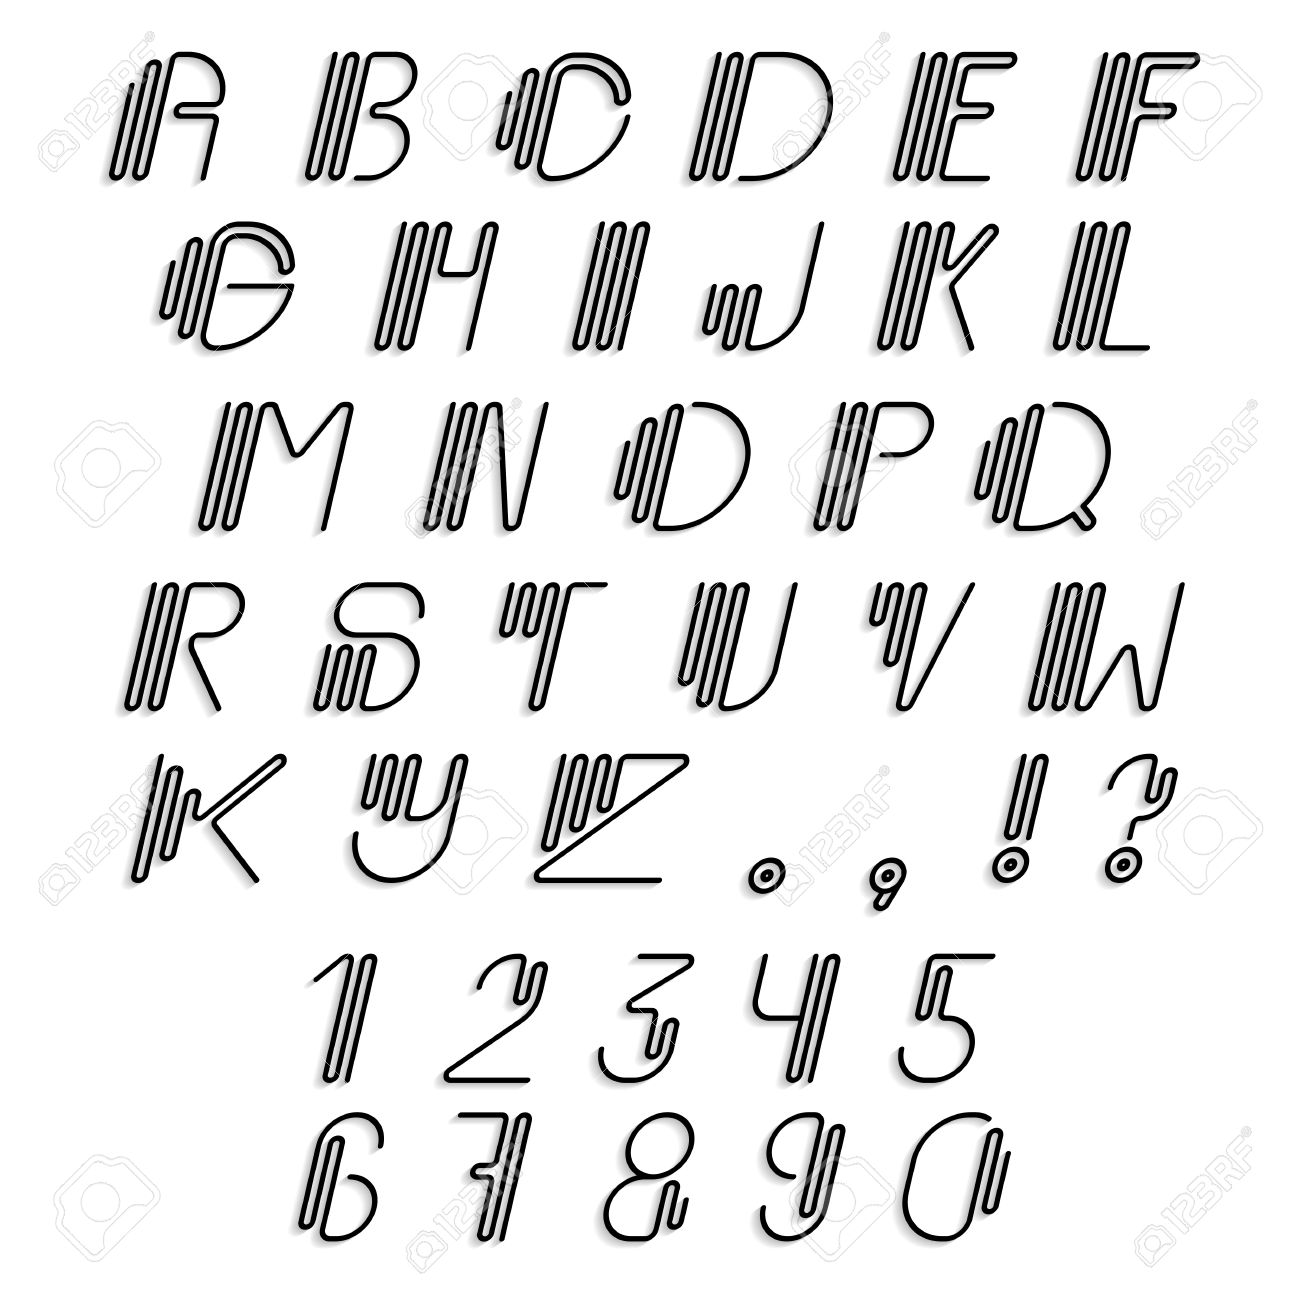 Linear Italic Uppercase Numerals And Punctuations Modern Font